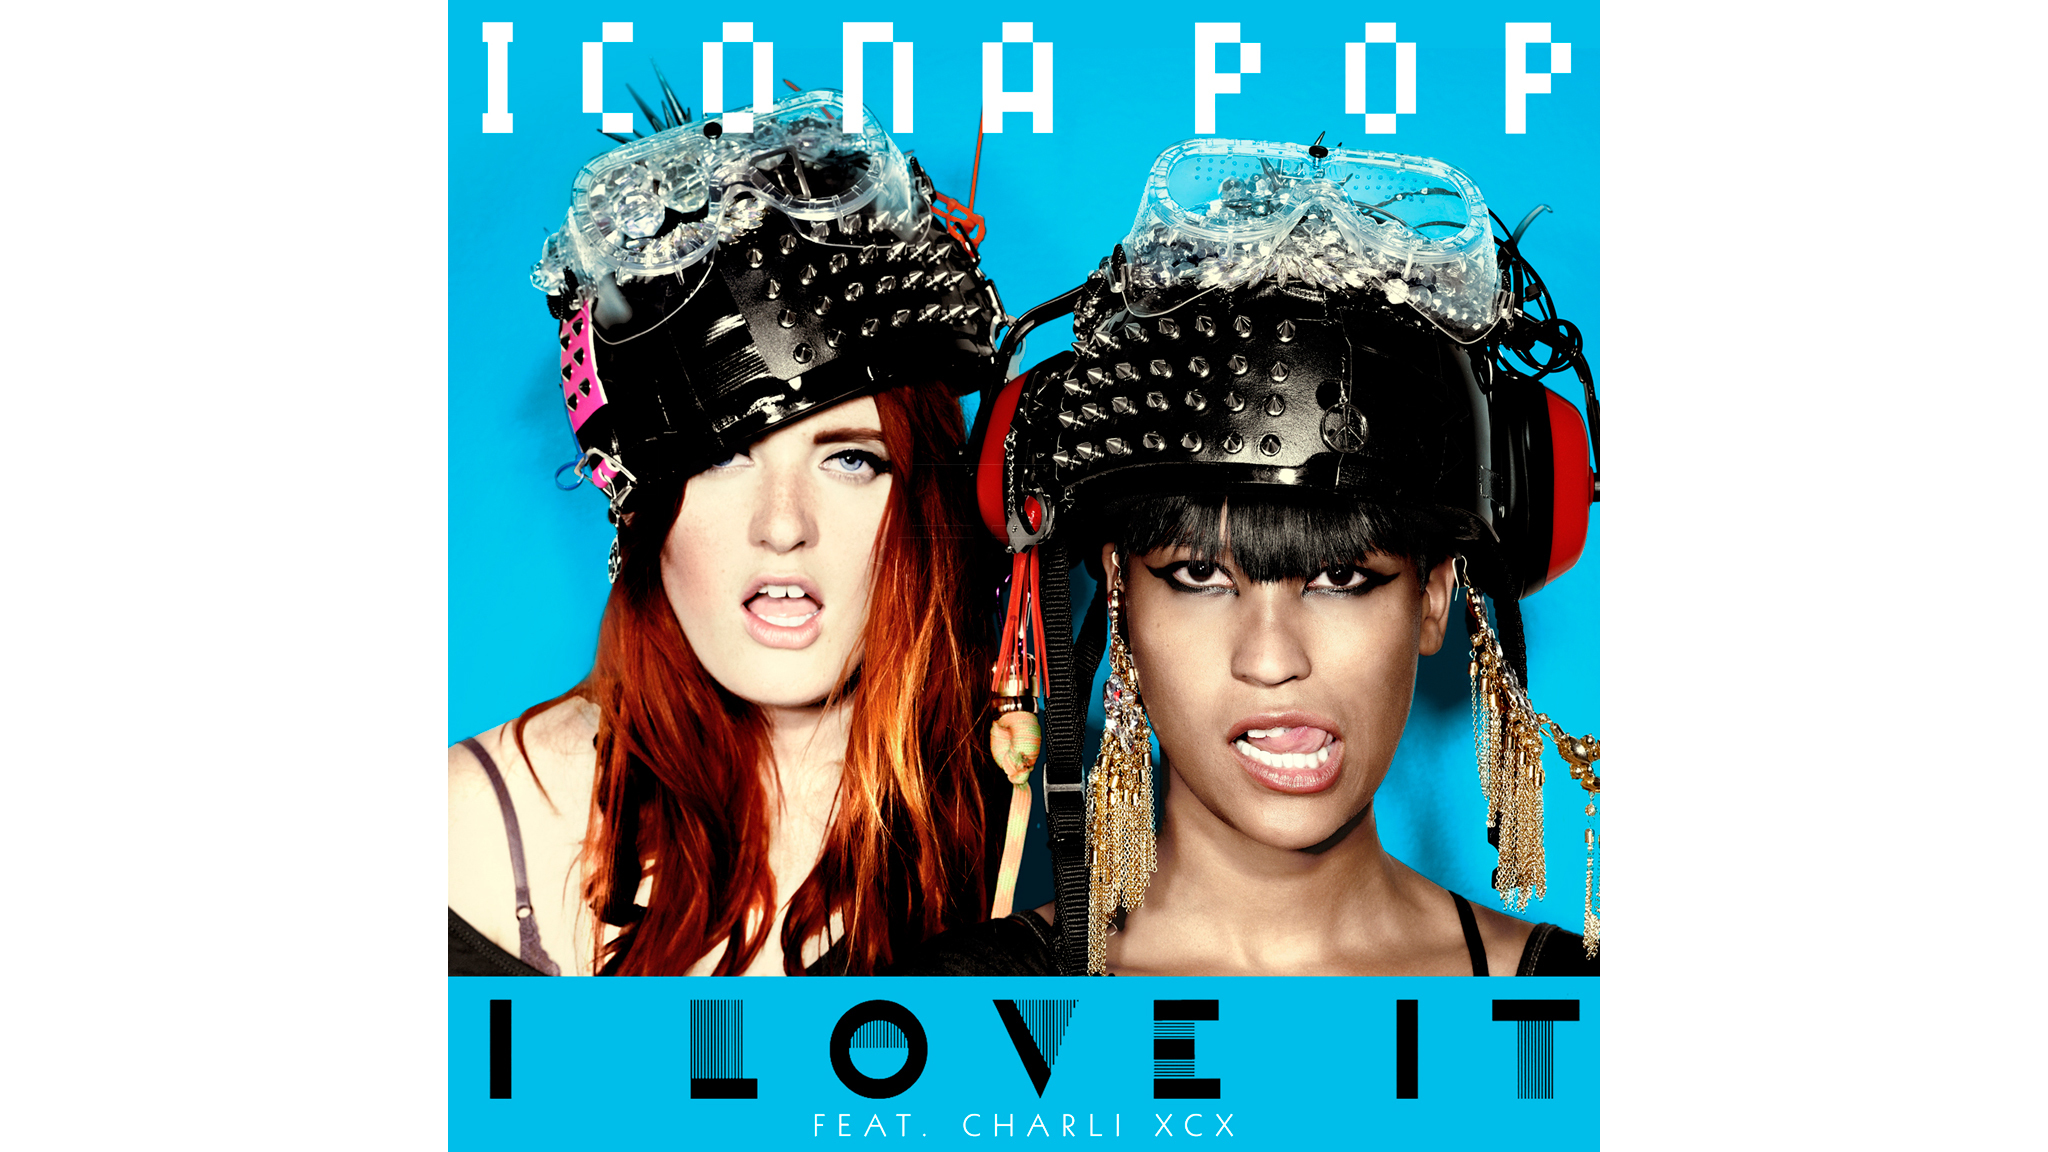 'I Love It' – Icona Pop featuring Charli XCX